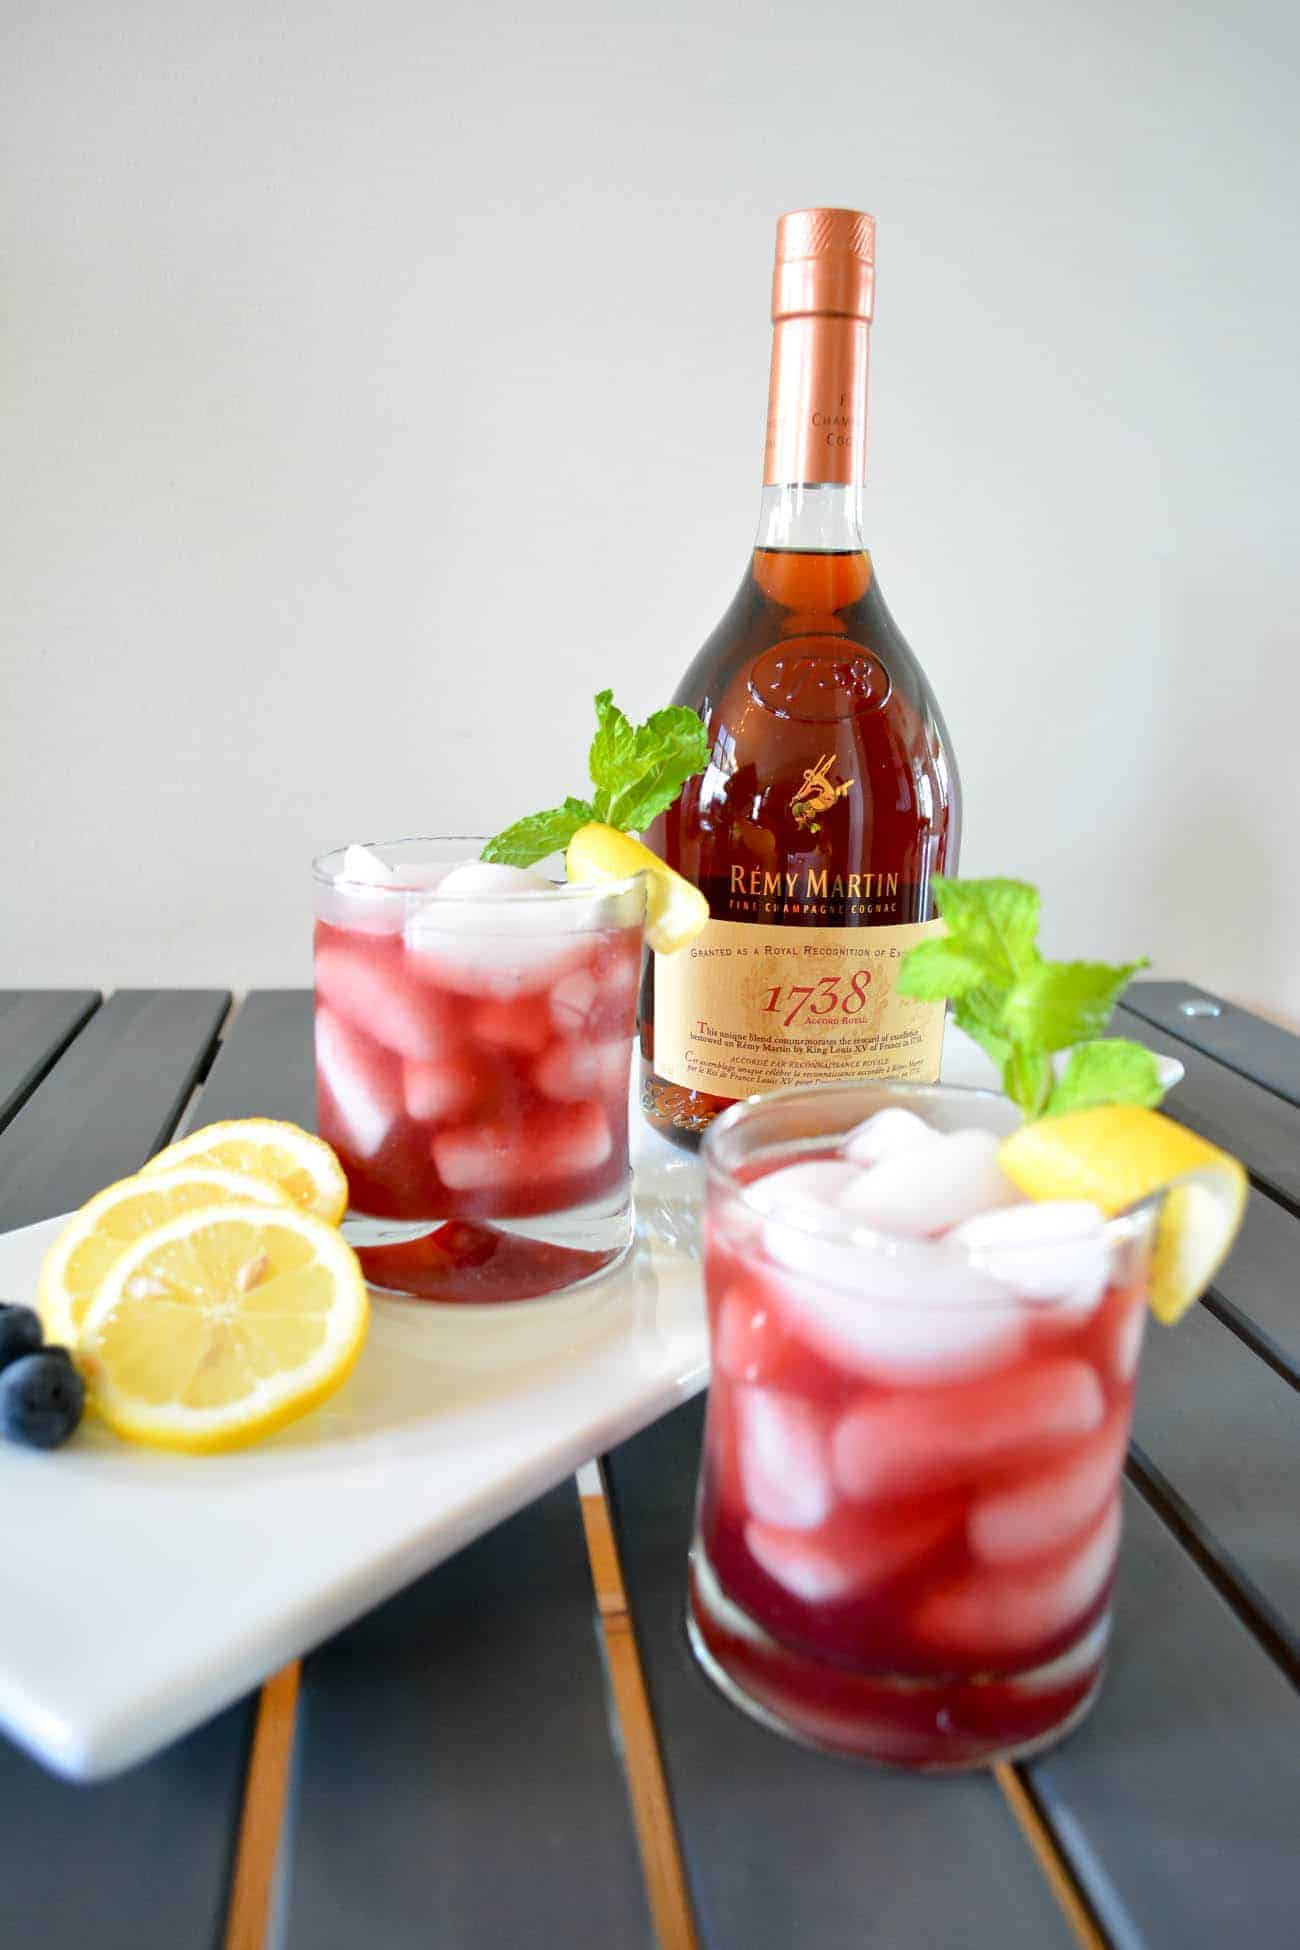 Remy Martin 1738 Cocktail, Remay Martin Cognac, #PassionDefinedRemyRefined